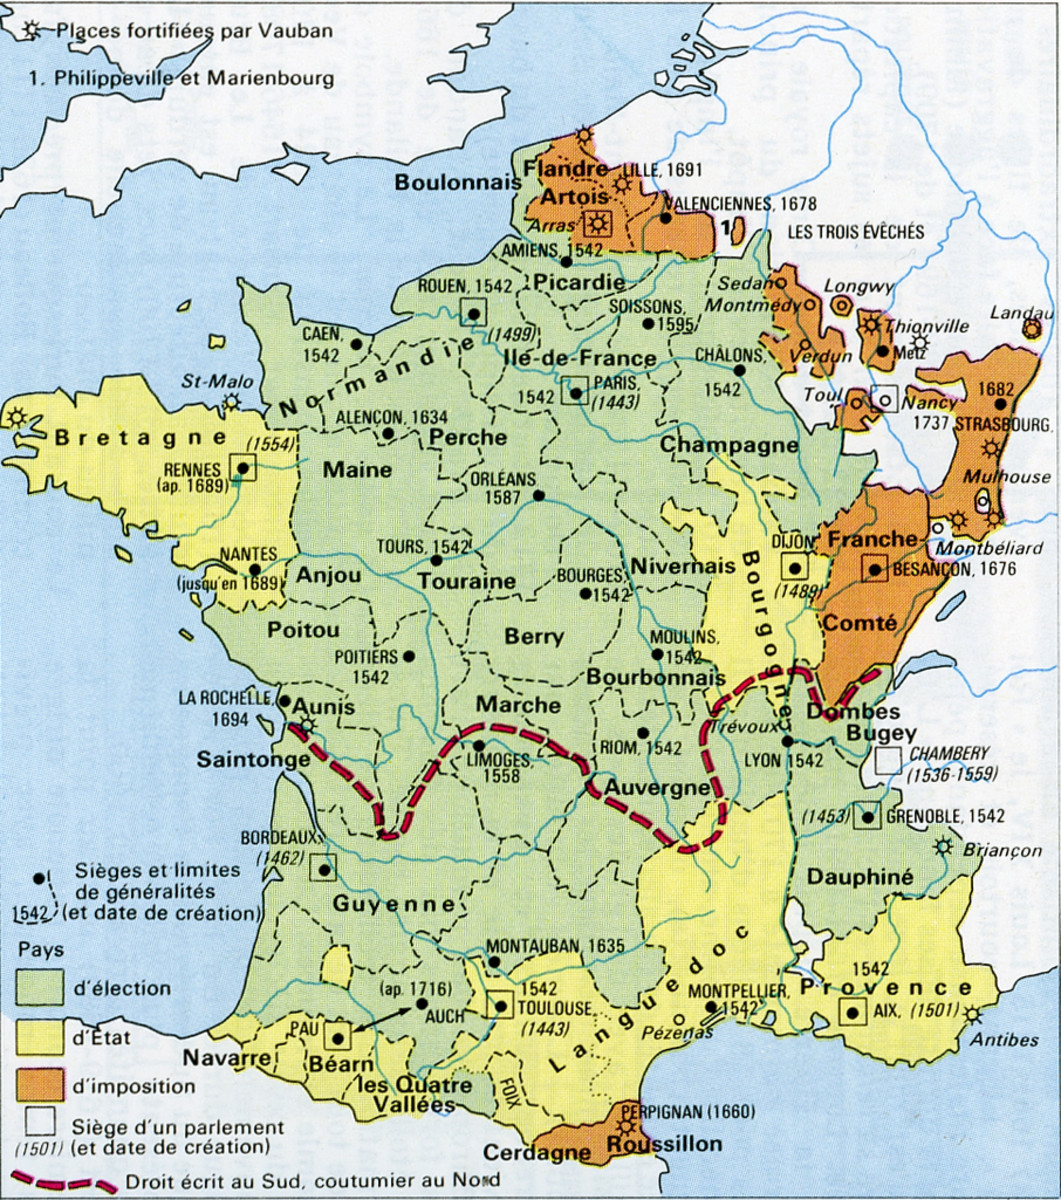 France at the beginning of the 18th century. The naval geography problem of France, in its division into Atlantic and Mediterranean shores, is one which would never go away.